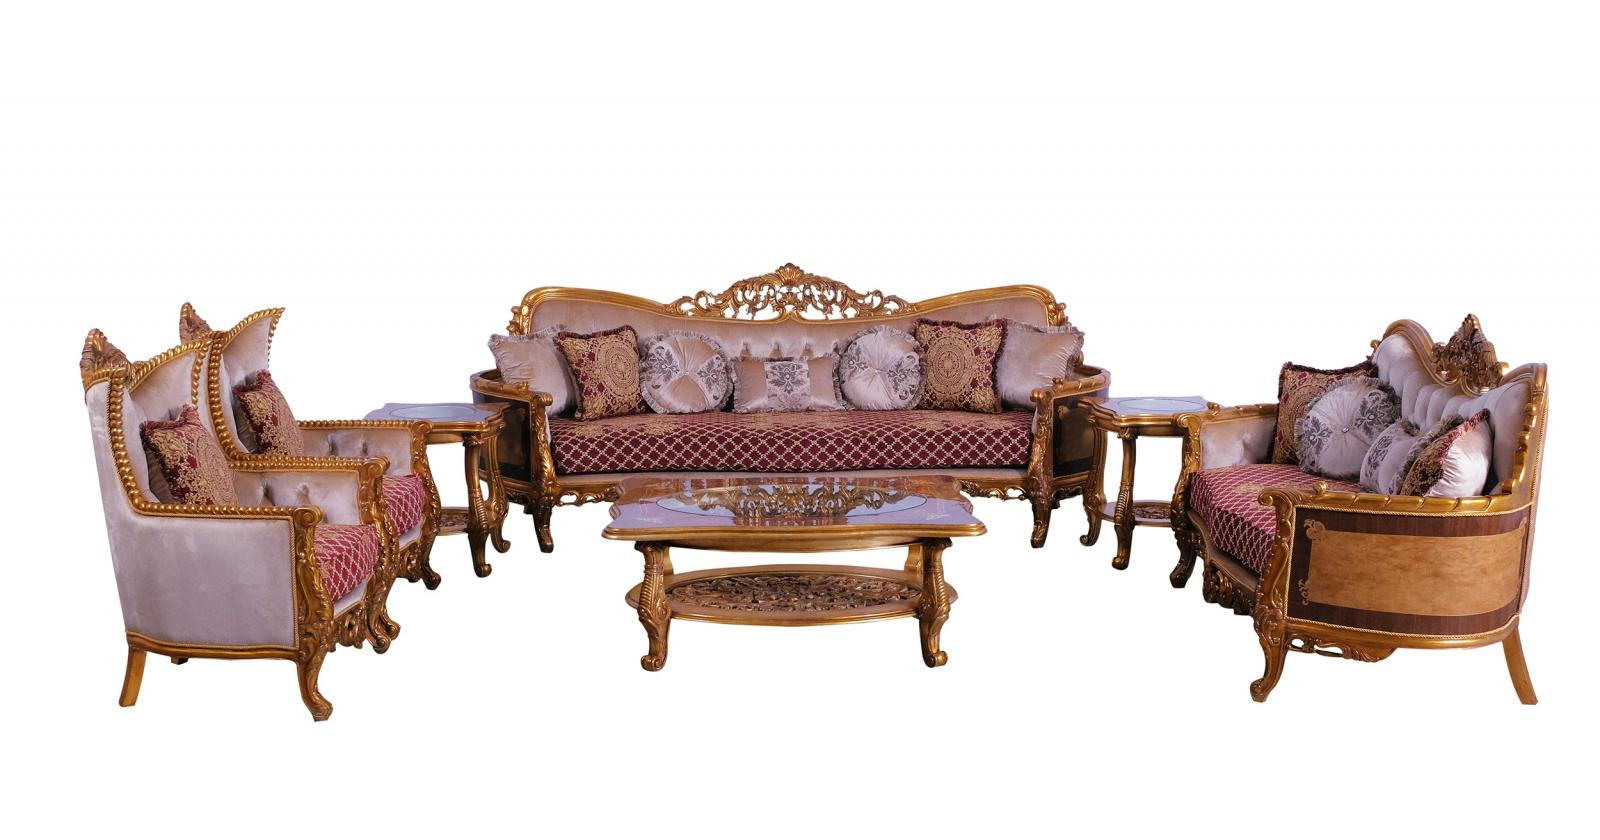 Classic  Traditional Gold  Red Wood  Solid Hardwood and Fabric Sofa Set EUROPEAN FURNITURE 31058-S-Set-4